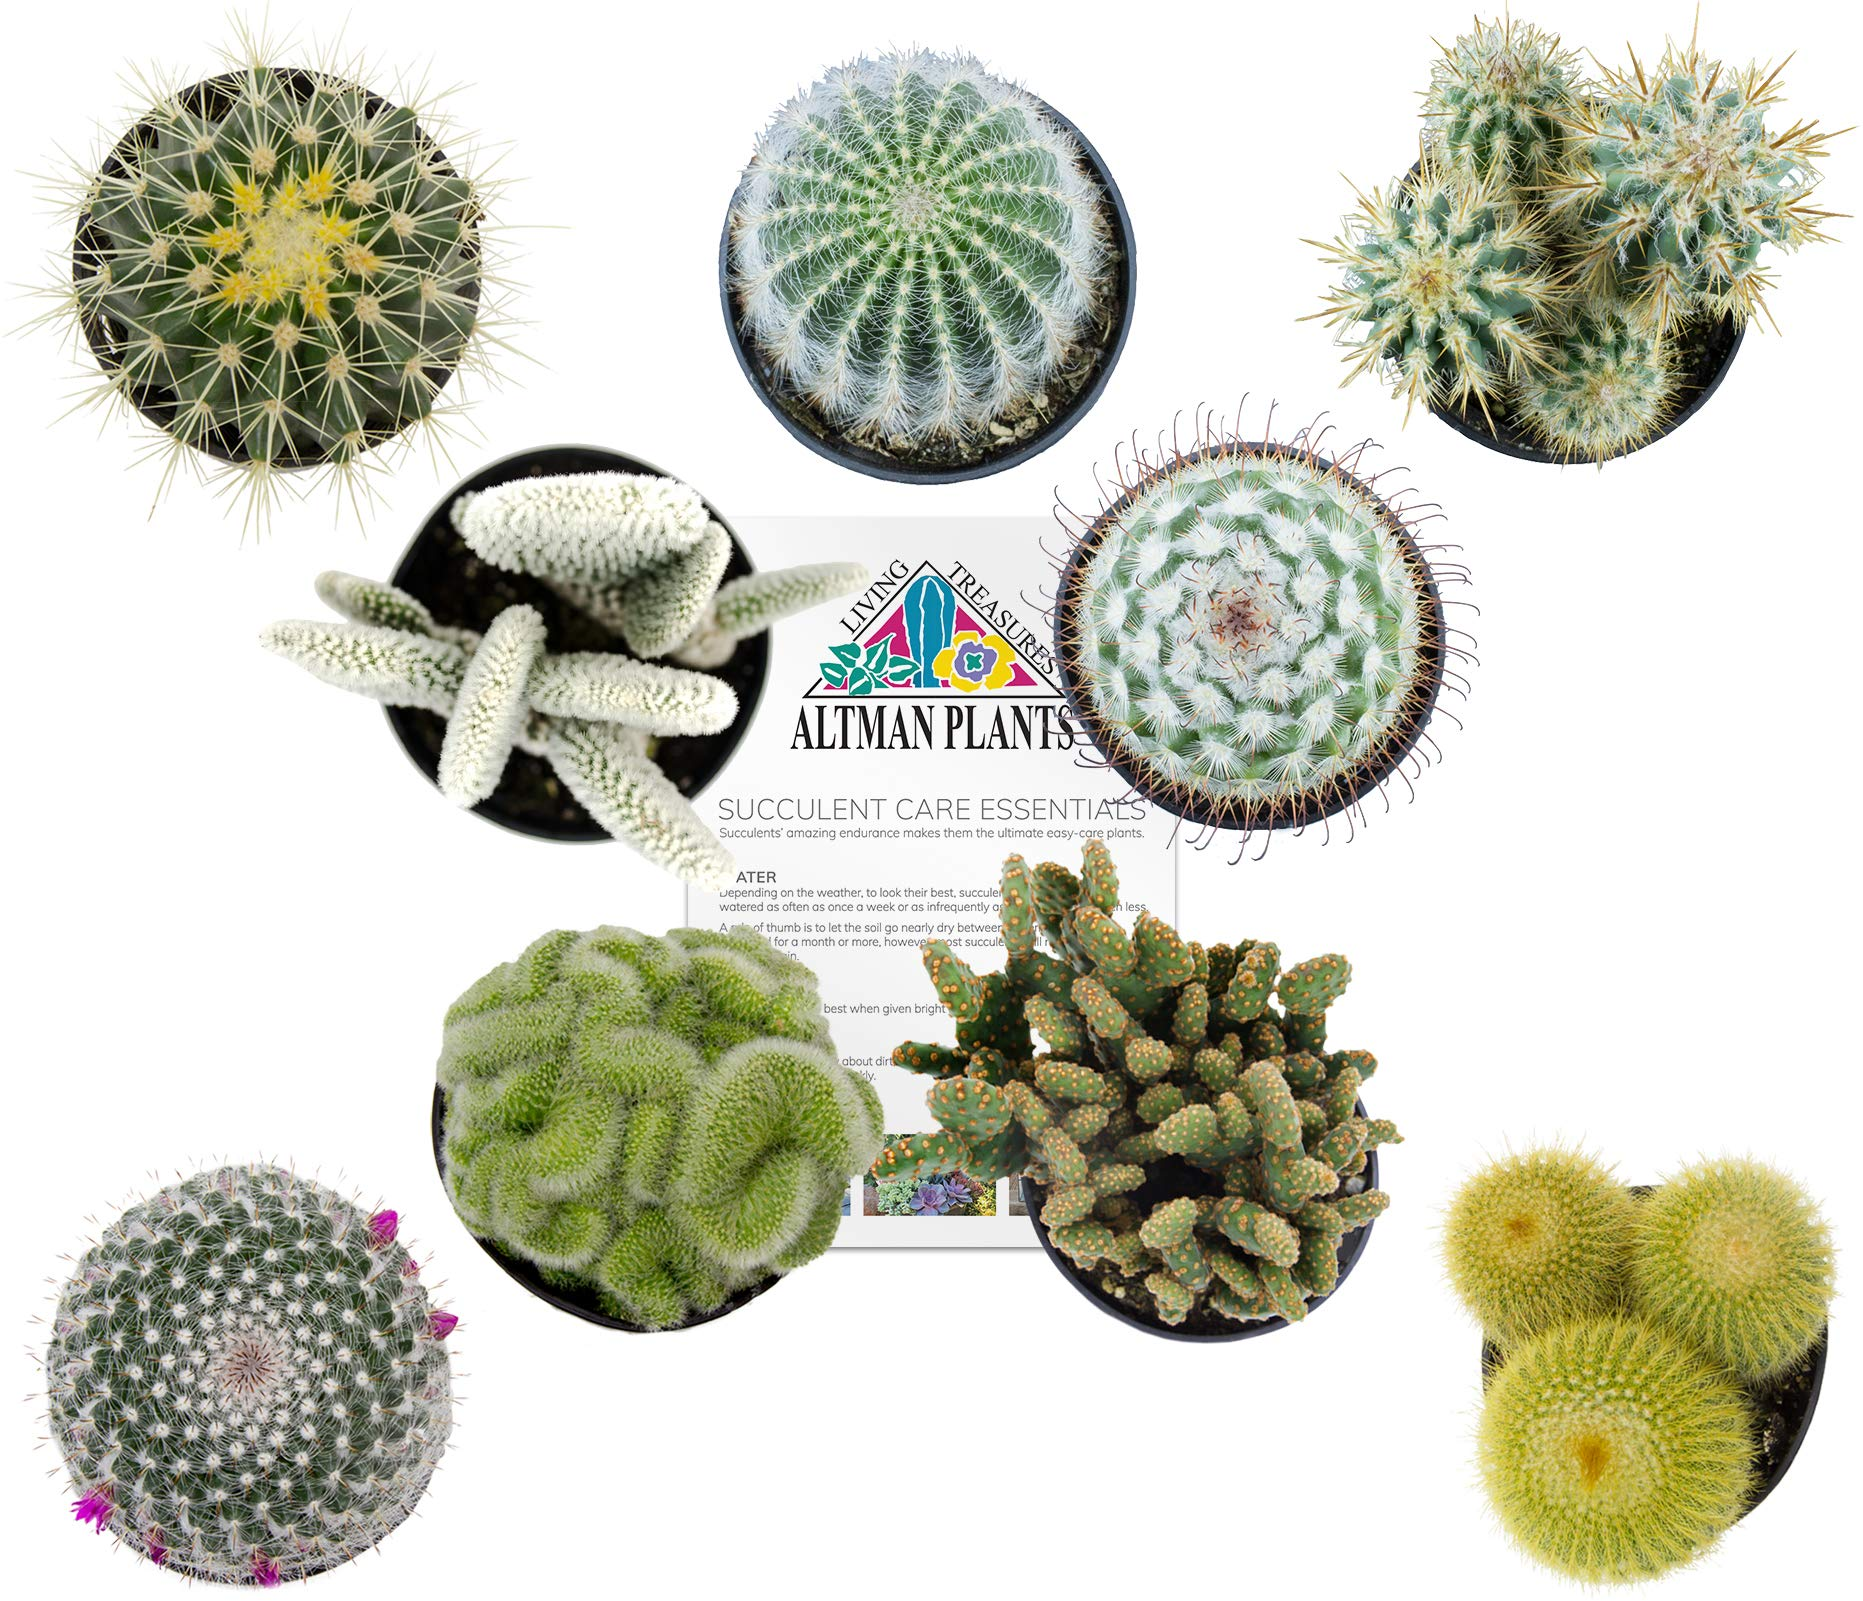 Altman Plants Assorted Live Cactus Collection large real cacti for planters or gifts, 3.5'', 9 Pack by Altman Plants (Image #1)